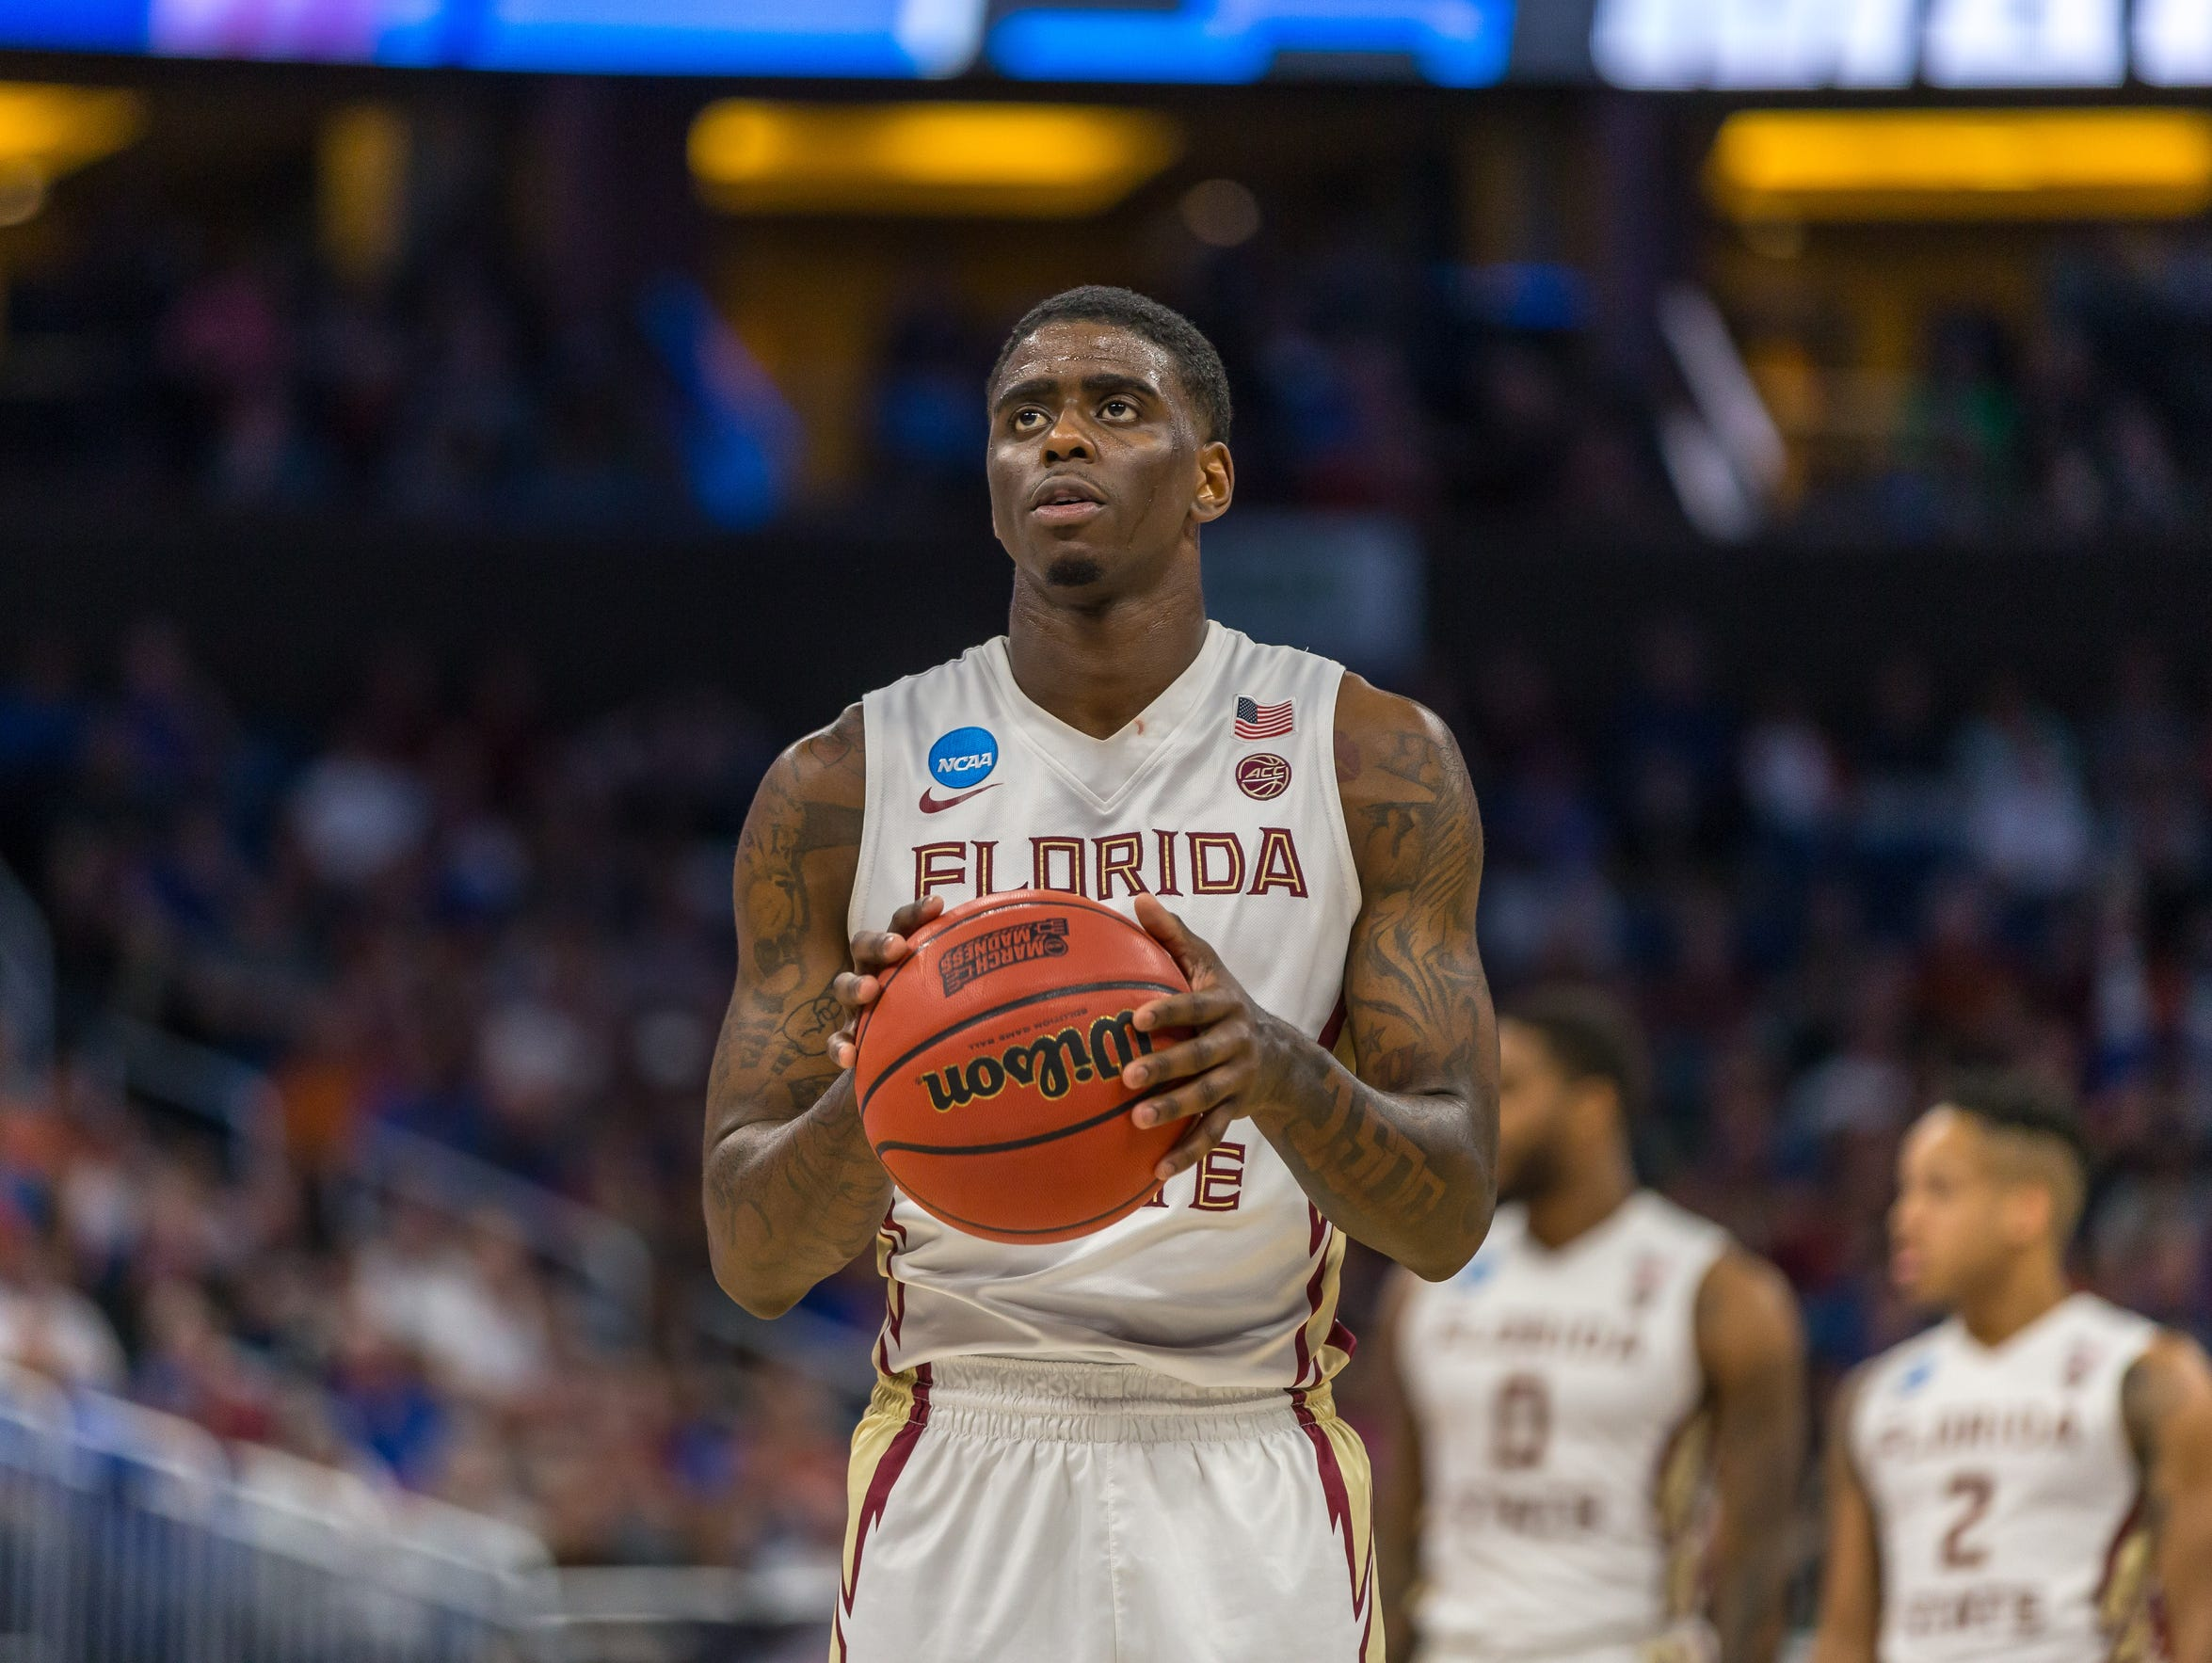 Florida State shooting guard Dwayne Bacon is projected